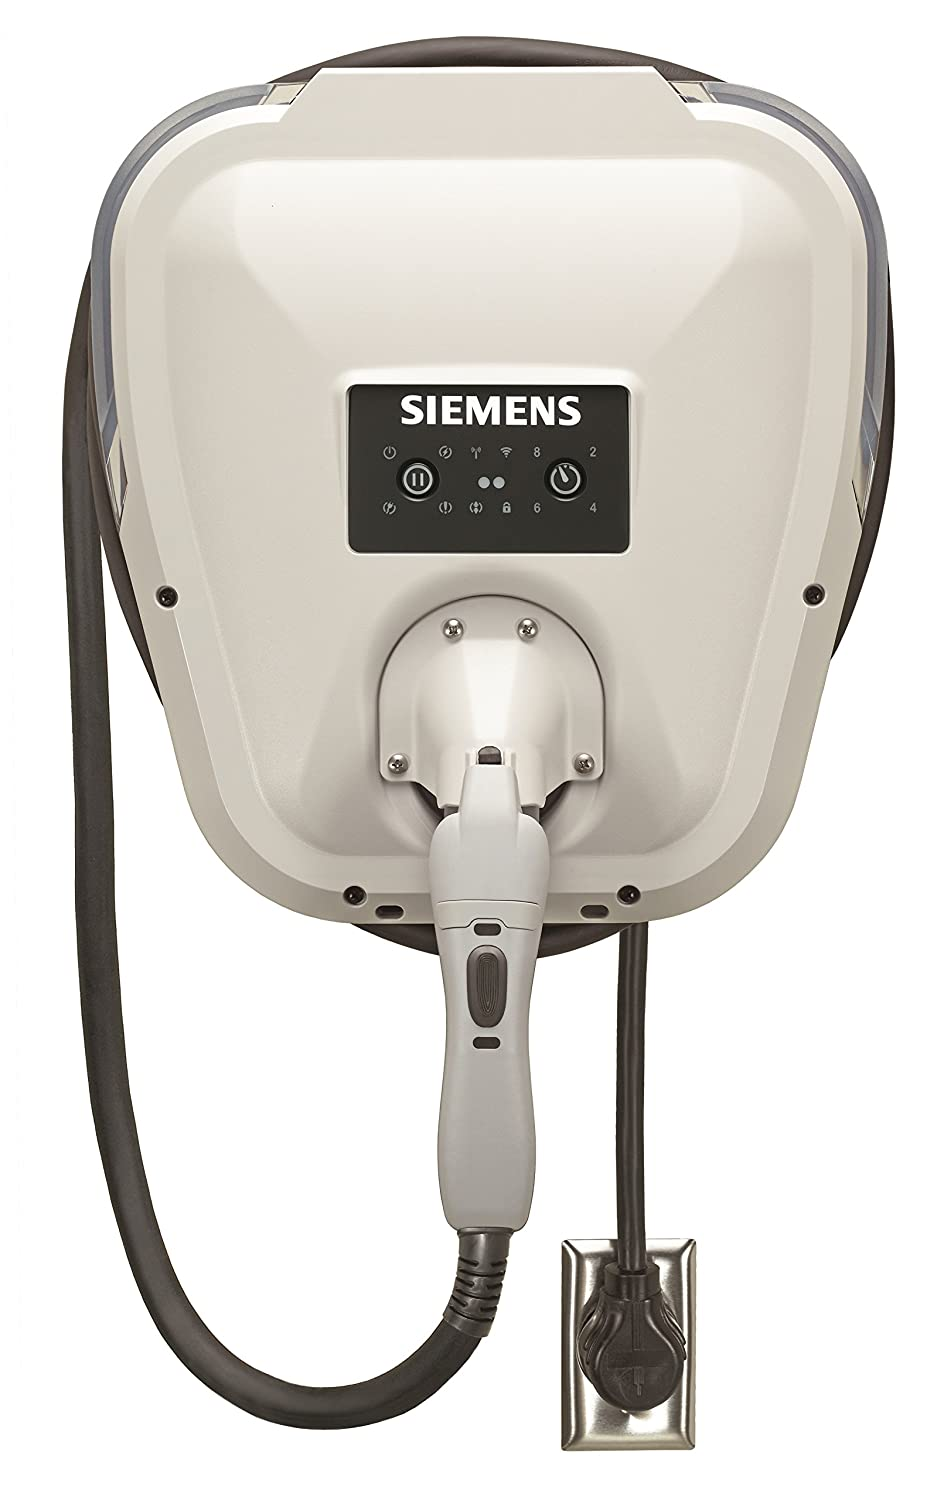 Siemens VC30GRYU Versicharge 30-Amp Electric Vehicle Charger with Flexible Indoor/Outdoor and 20-Feet Cord